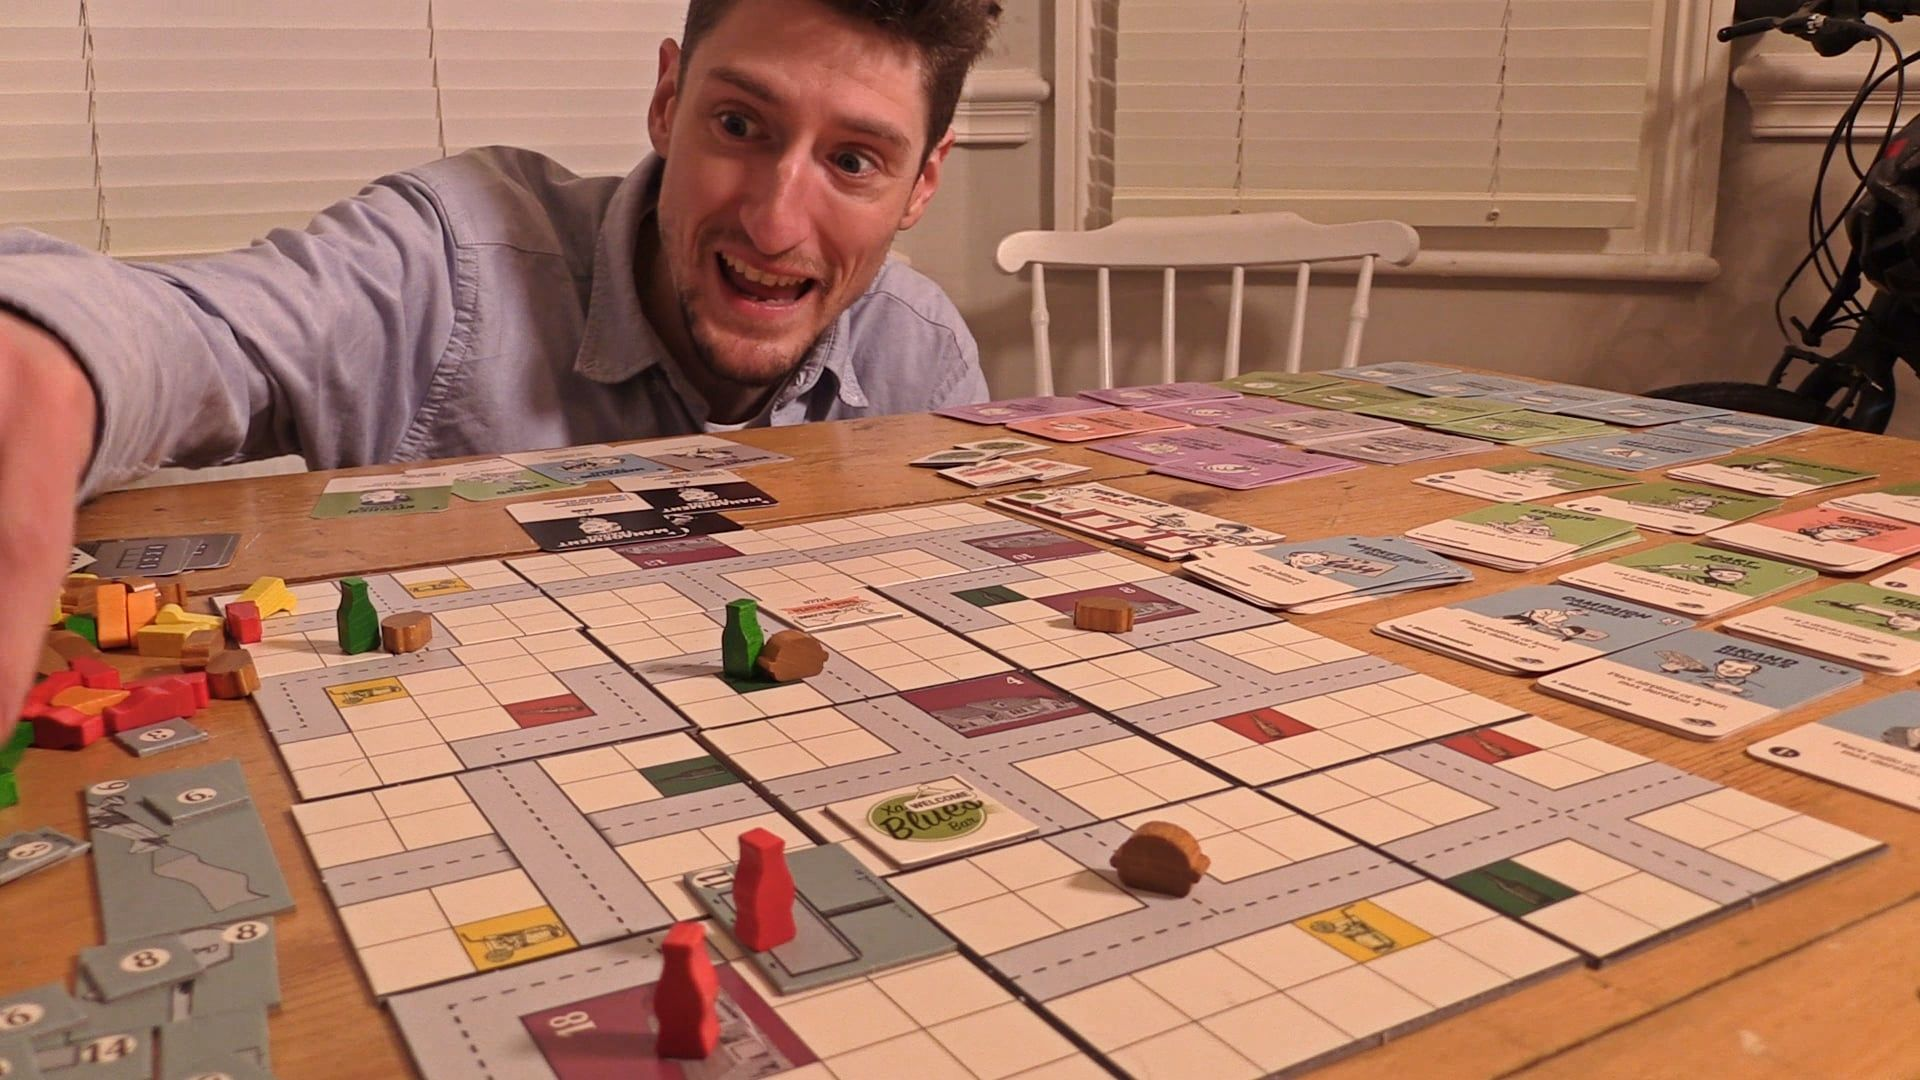 Sex toy board games